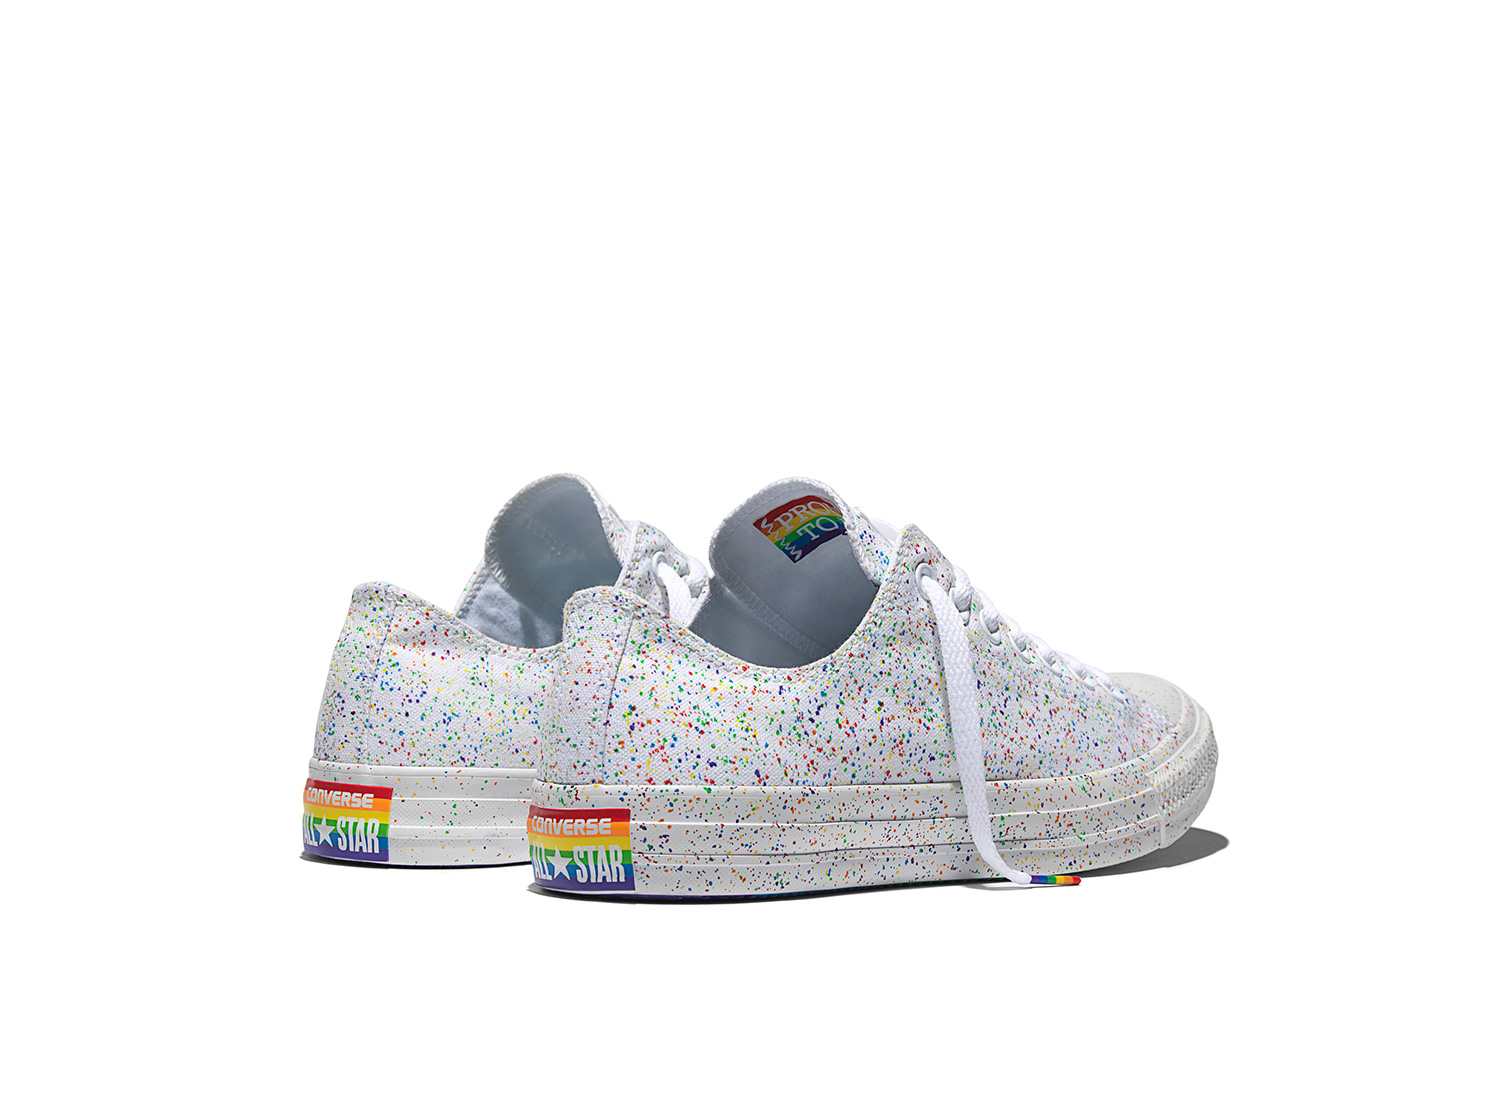 2016 Converse Pride Collection with New Rainbow Design Chuck Taylor Sneakers 6d75bc29b